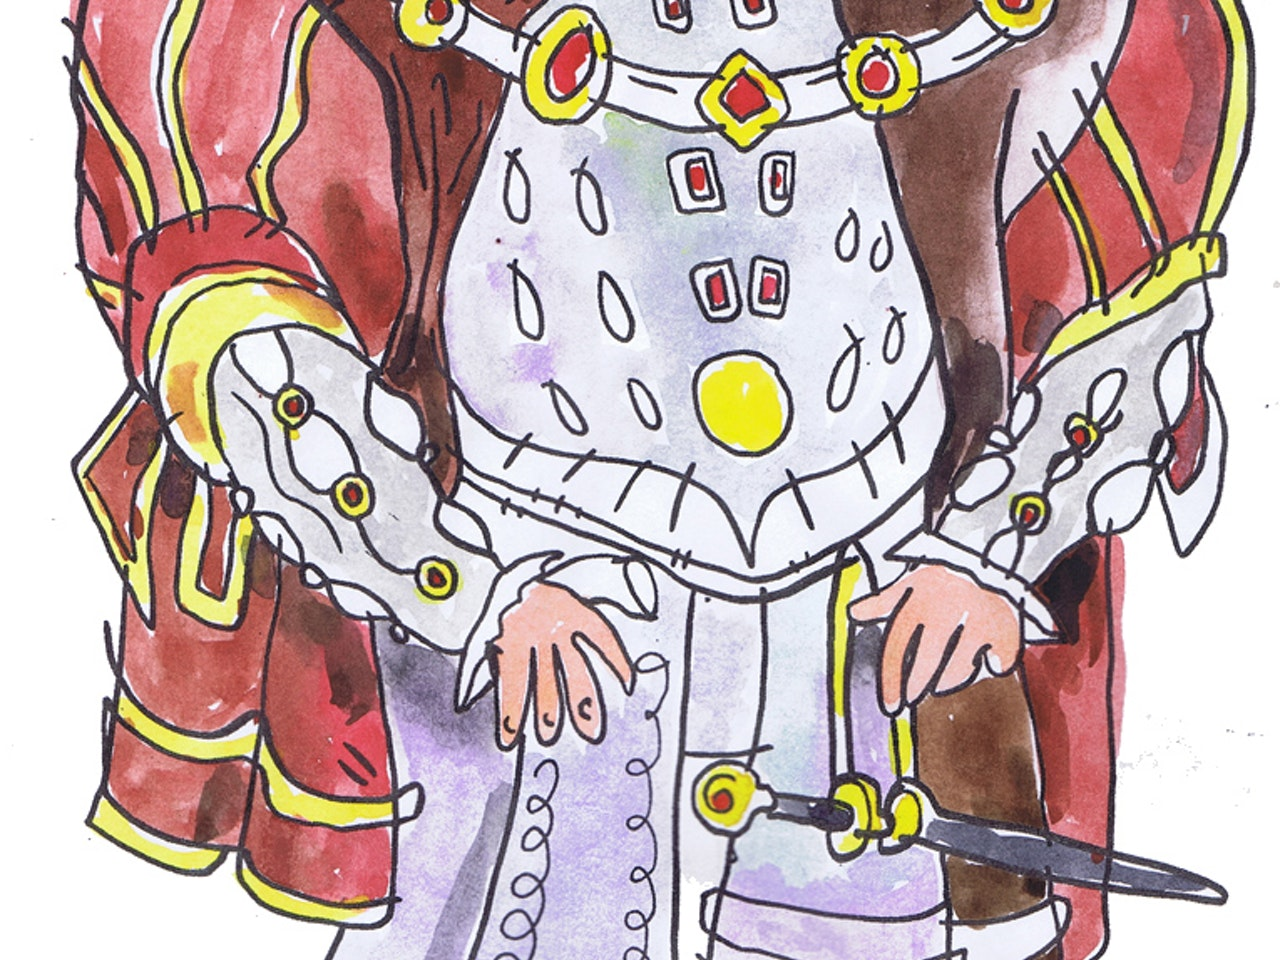 watercolour painting pen and ink coloured pencil Book cover childrens illustration animation funny  humorous comical colourful graphic novel comic strip cartoon comic book educational publishing historical history  royal regal court london monarch medieval jewels